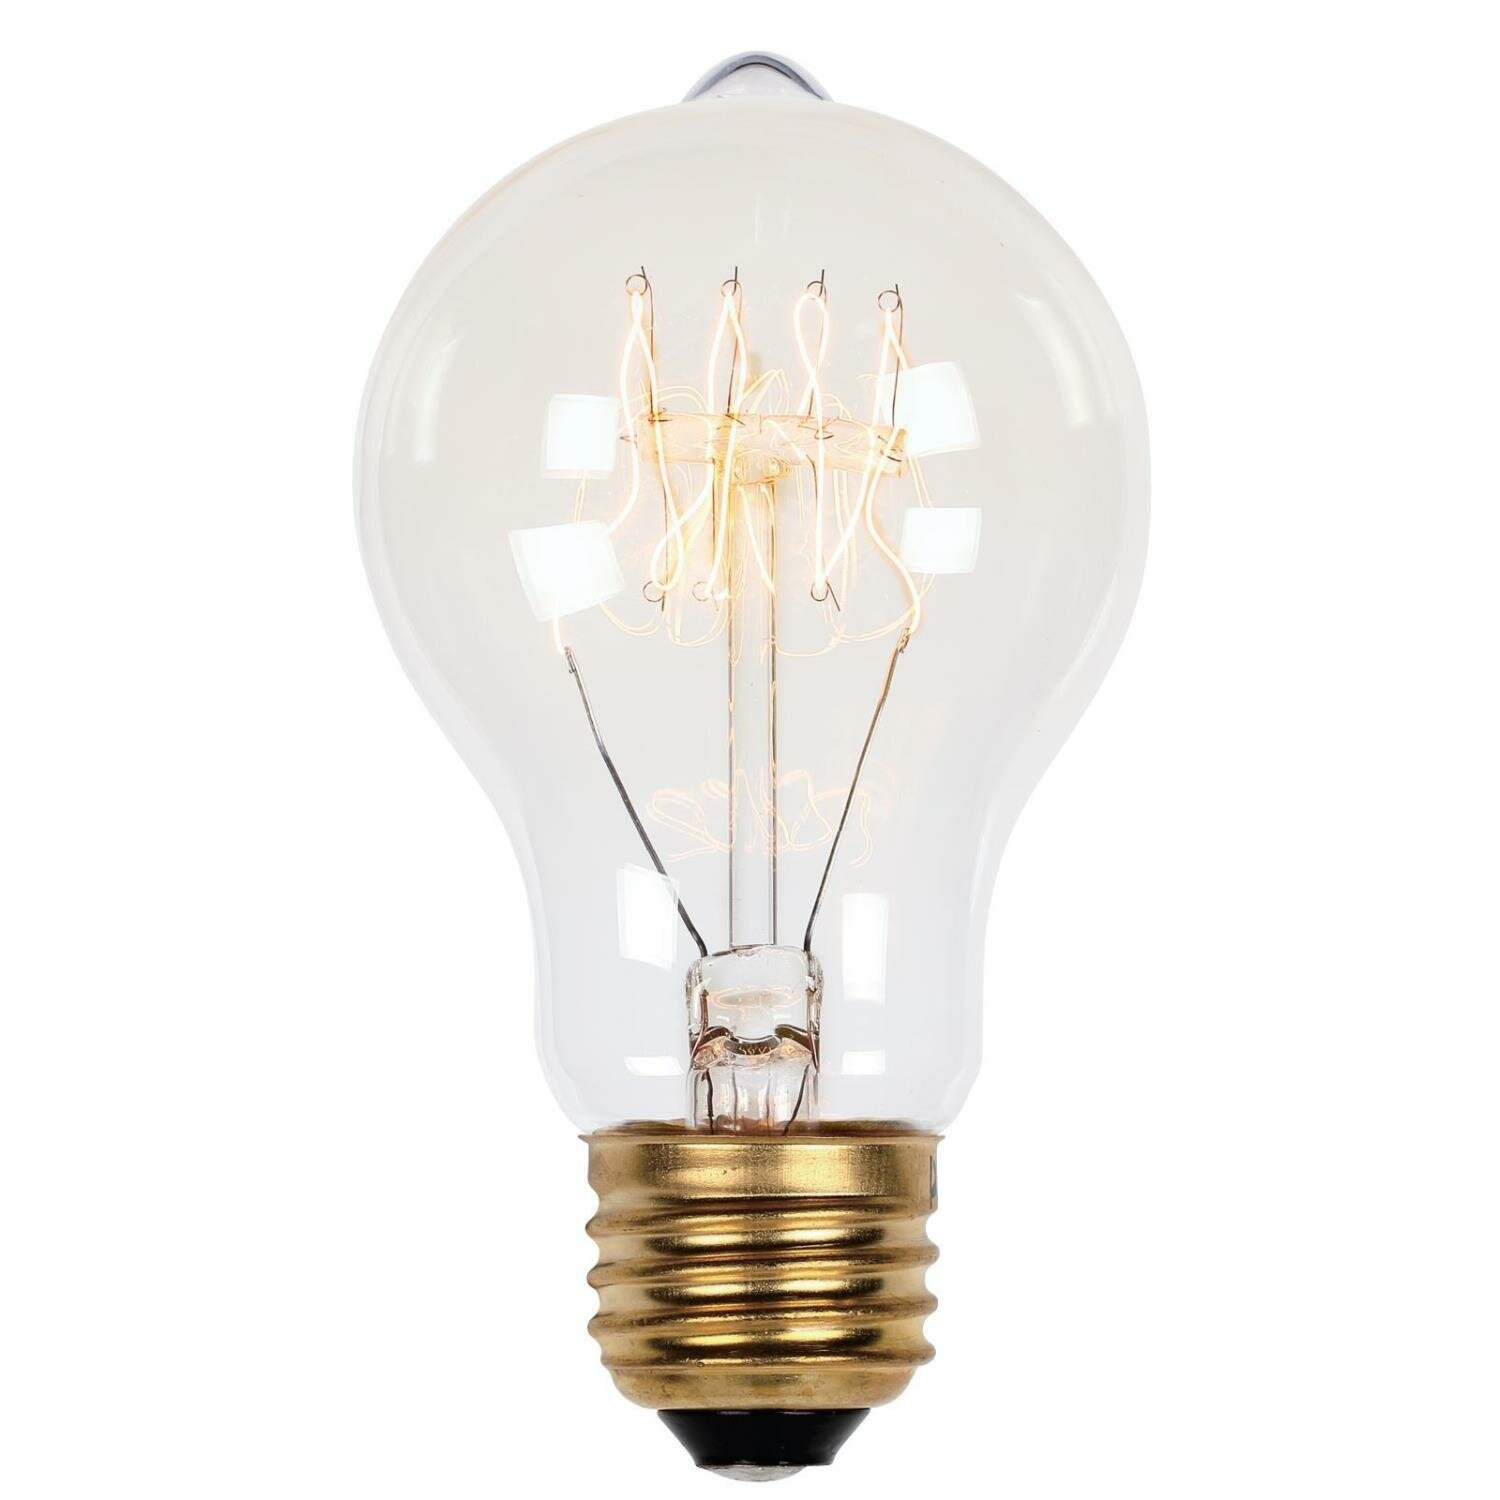 Westinghouse Lighting A19 Incandescent Light Bulb Soft White 2450k E26 Medium Standard Base Reviews Wayfair